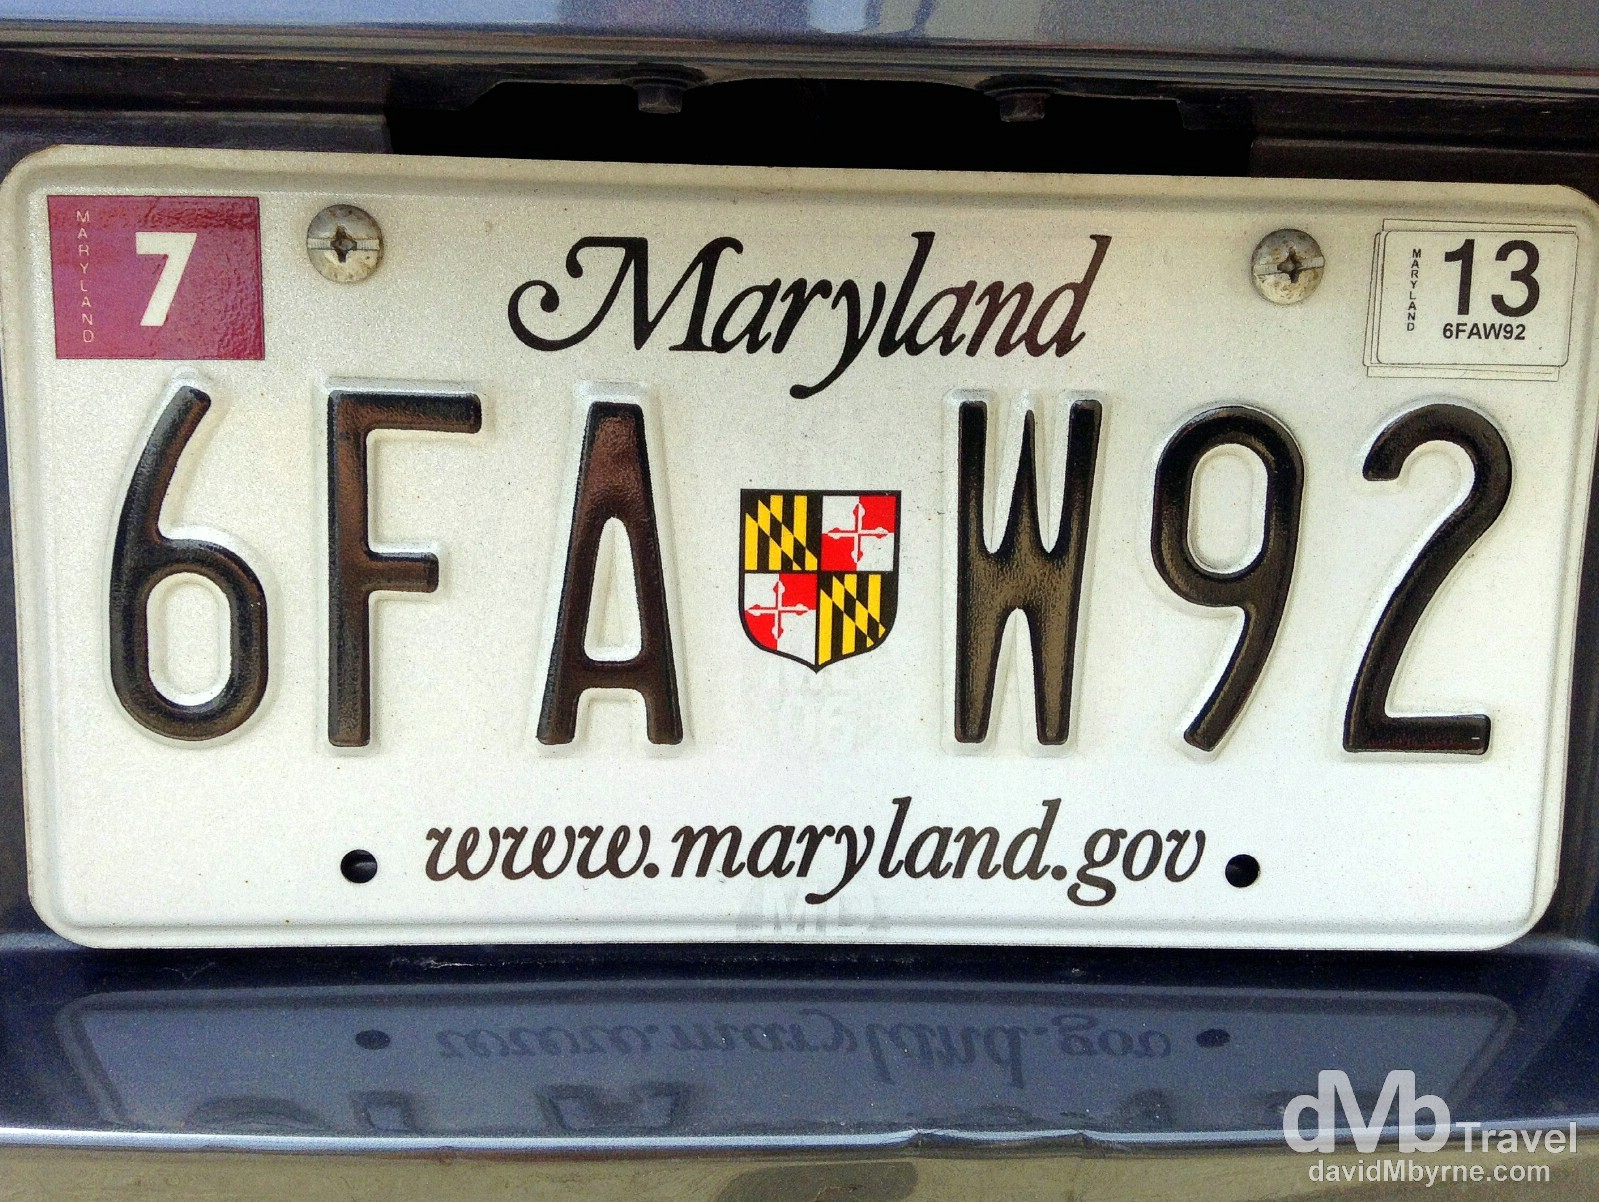 A licence plate on the streets of Baltimore, Maryland, USA. July 9th 2013.